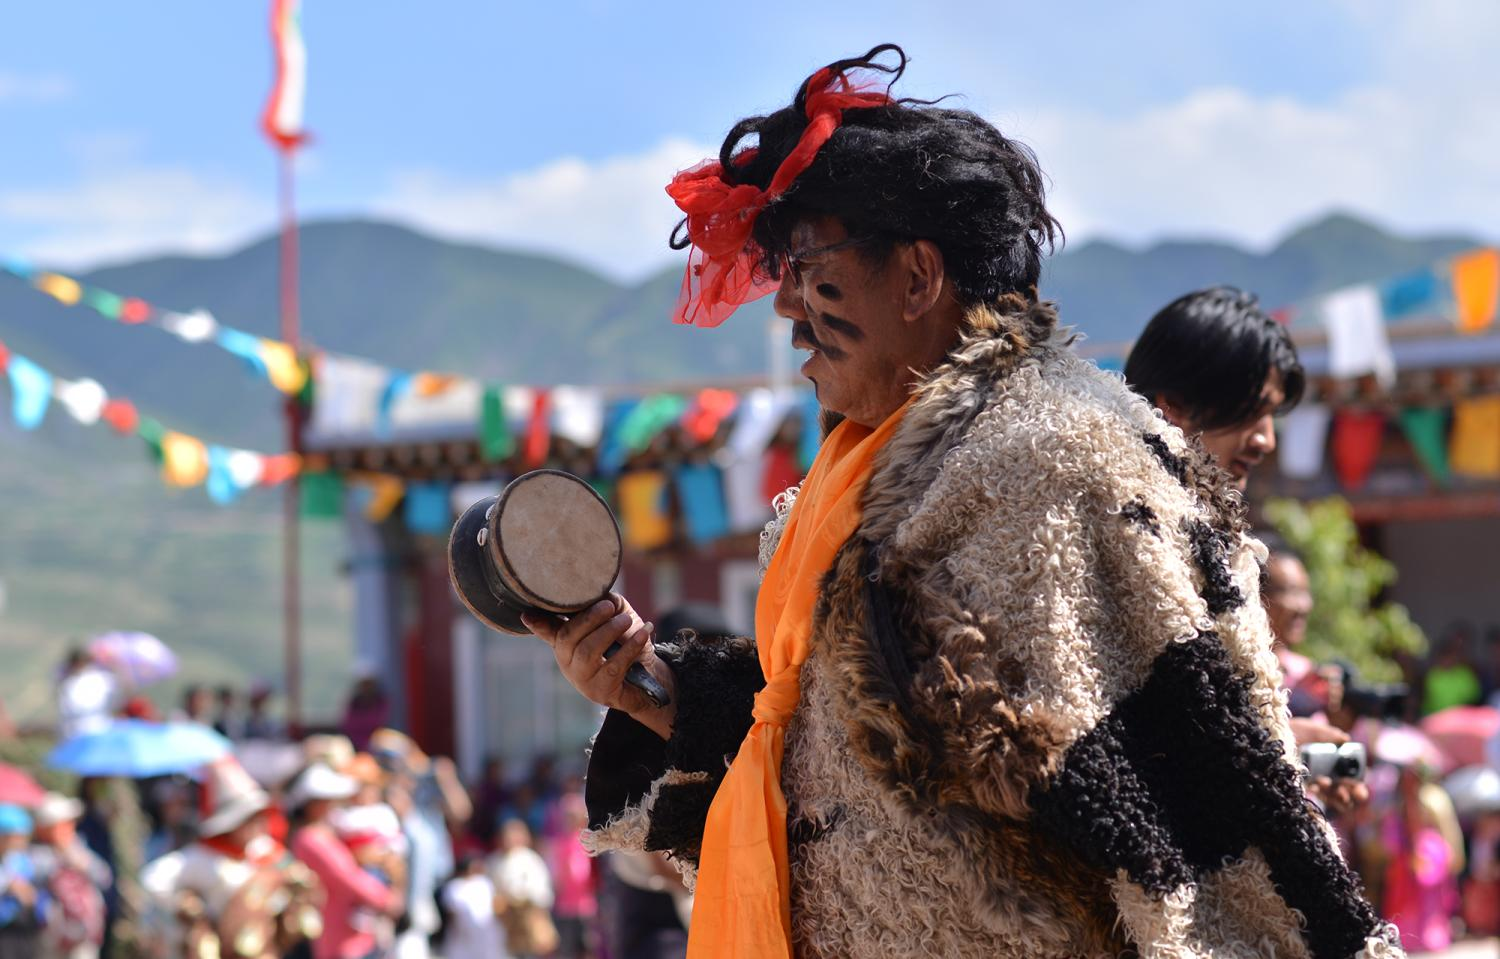 In the comedy portion of the festival, men dress up as women and animals and tell humorous stories. These stories are relevant to current community happenings and have a normative moral dimension.